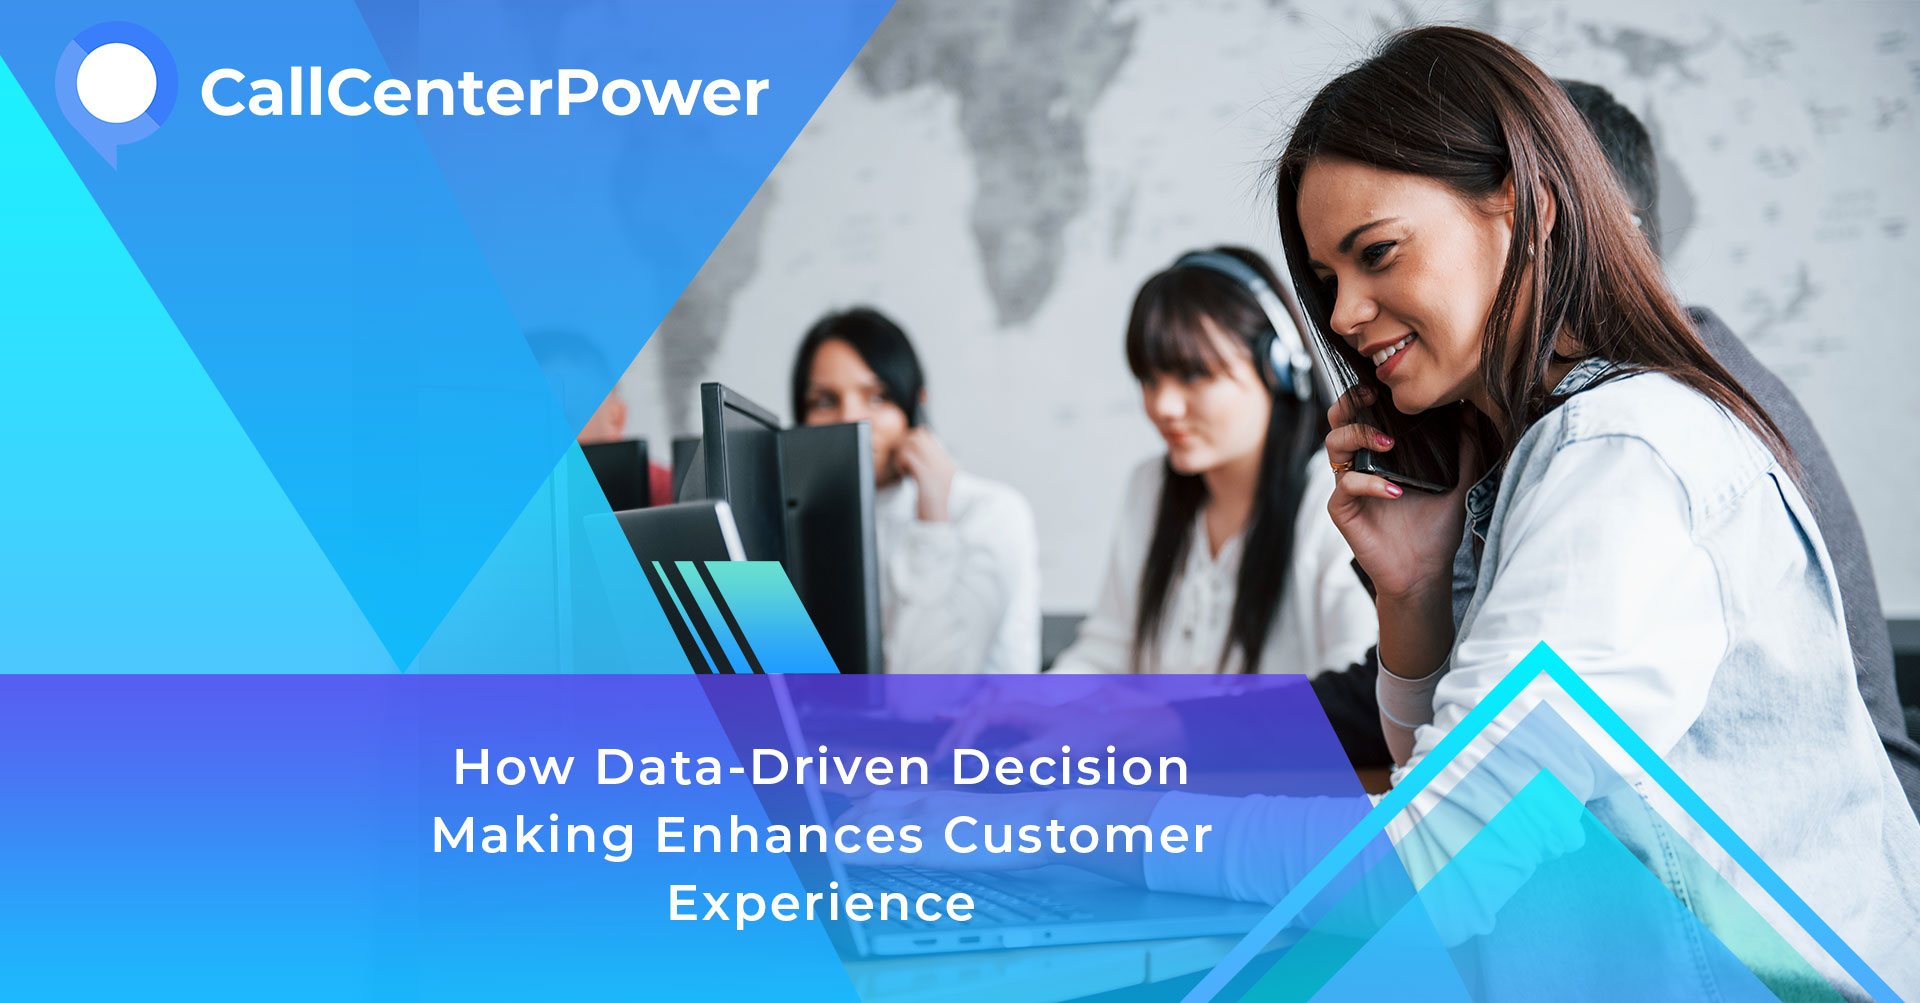 How Data-Driven Decision Making Enhances Customer Experience